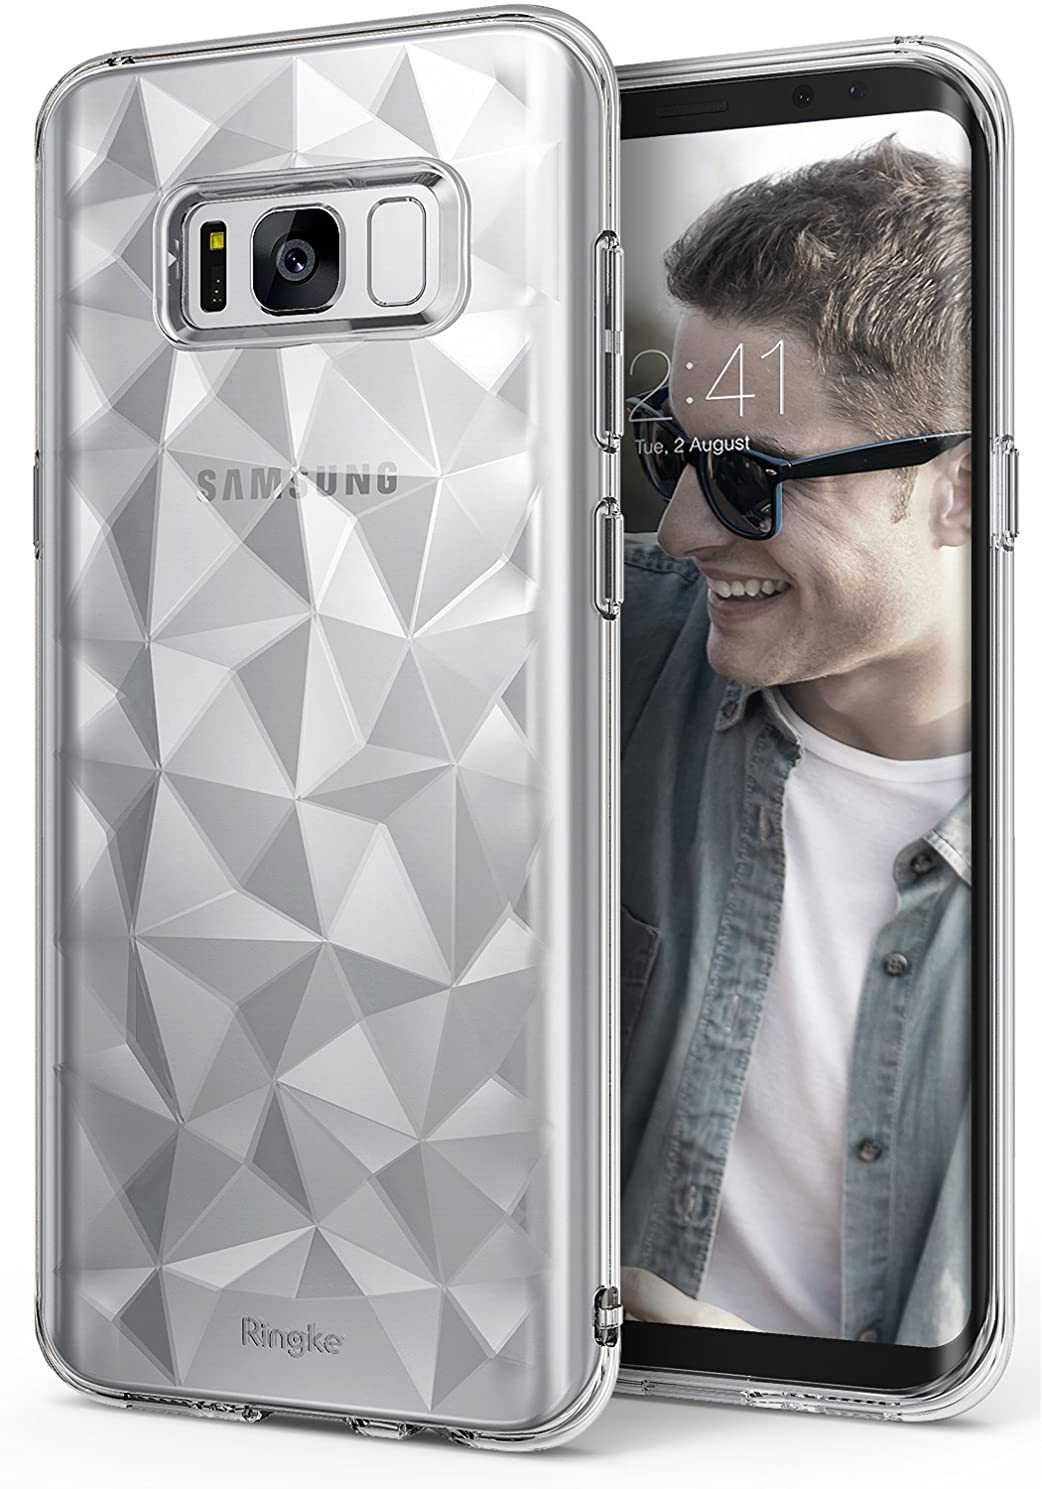 Ringke Air Prism Compatible with Galaxy S8 Case 3D Vogue Design Chic Ultra Rad Pyramid Diamond Pattern Flexible Jewel Textured Protective TPU Cover for Samsung Galaxy S8 2017 - Clear